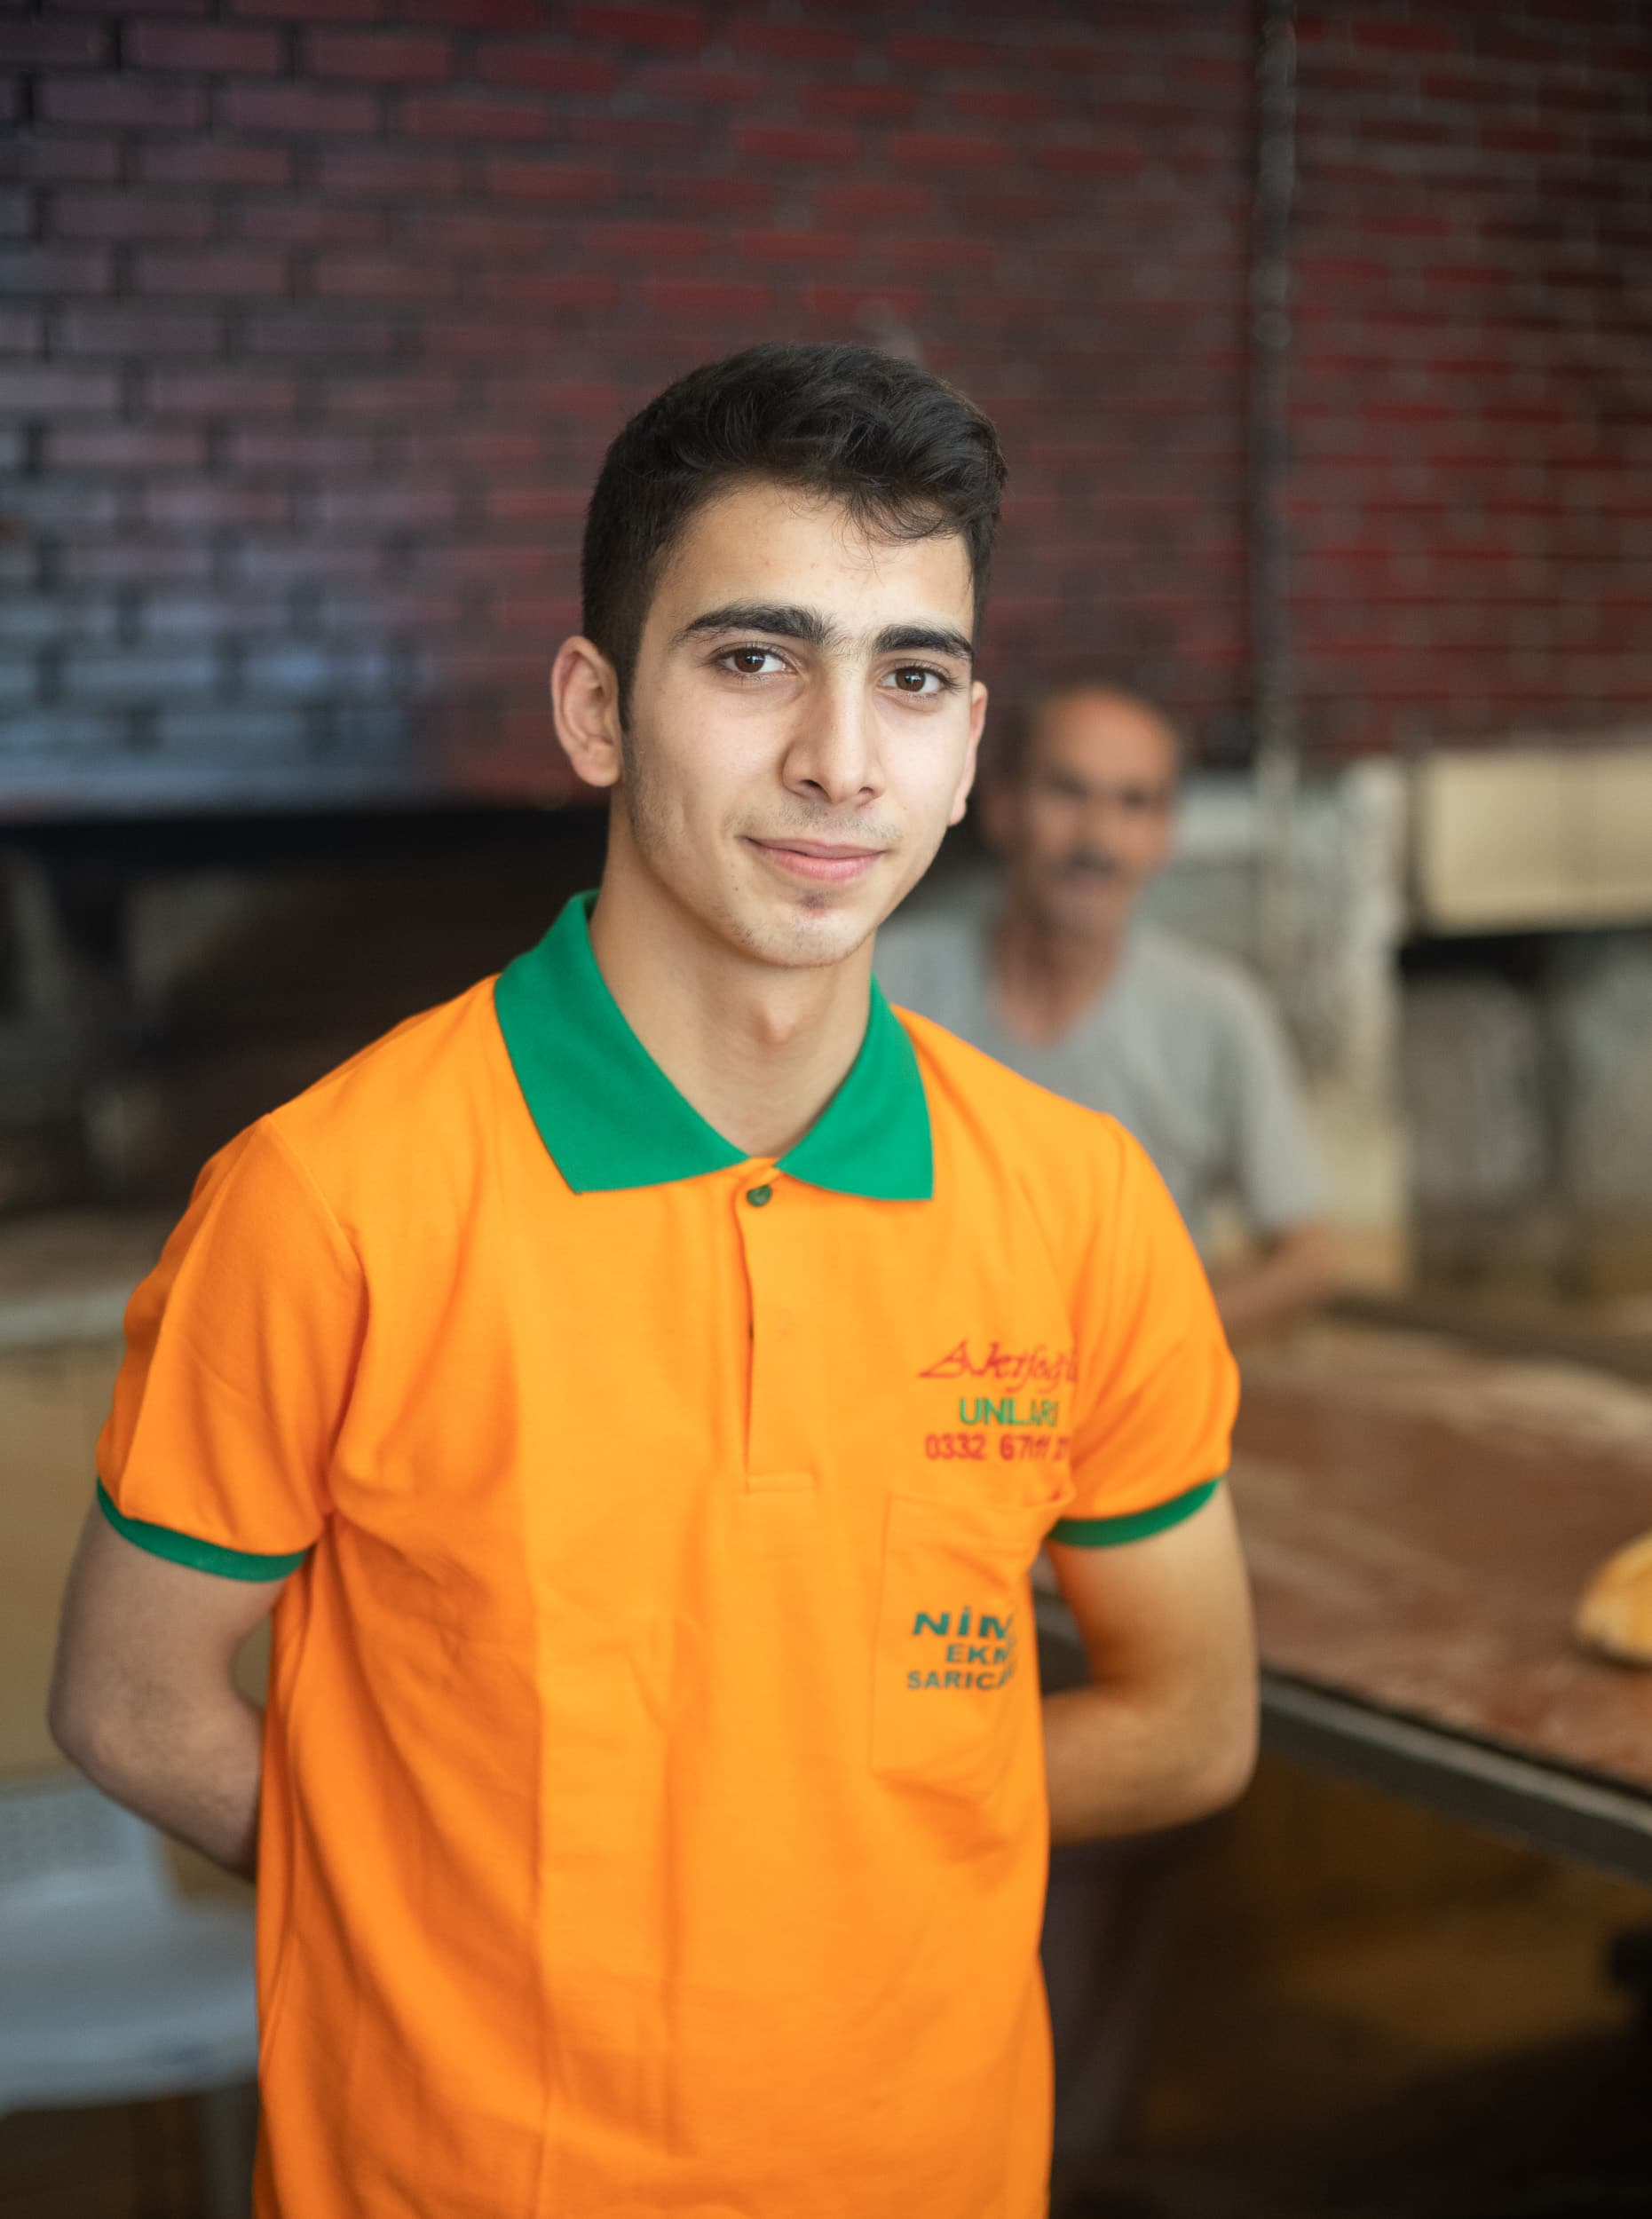 Turkish baker portrait